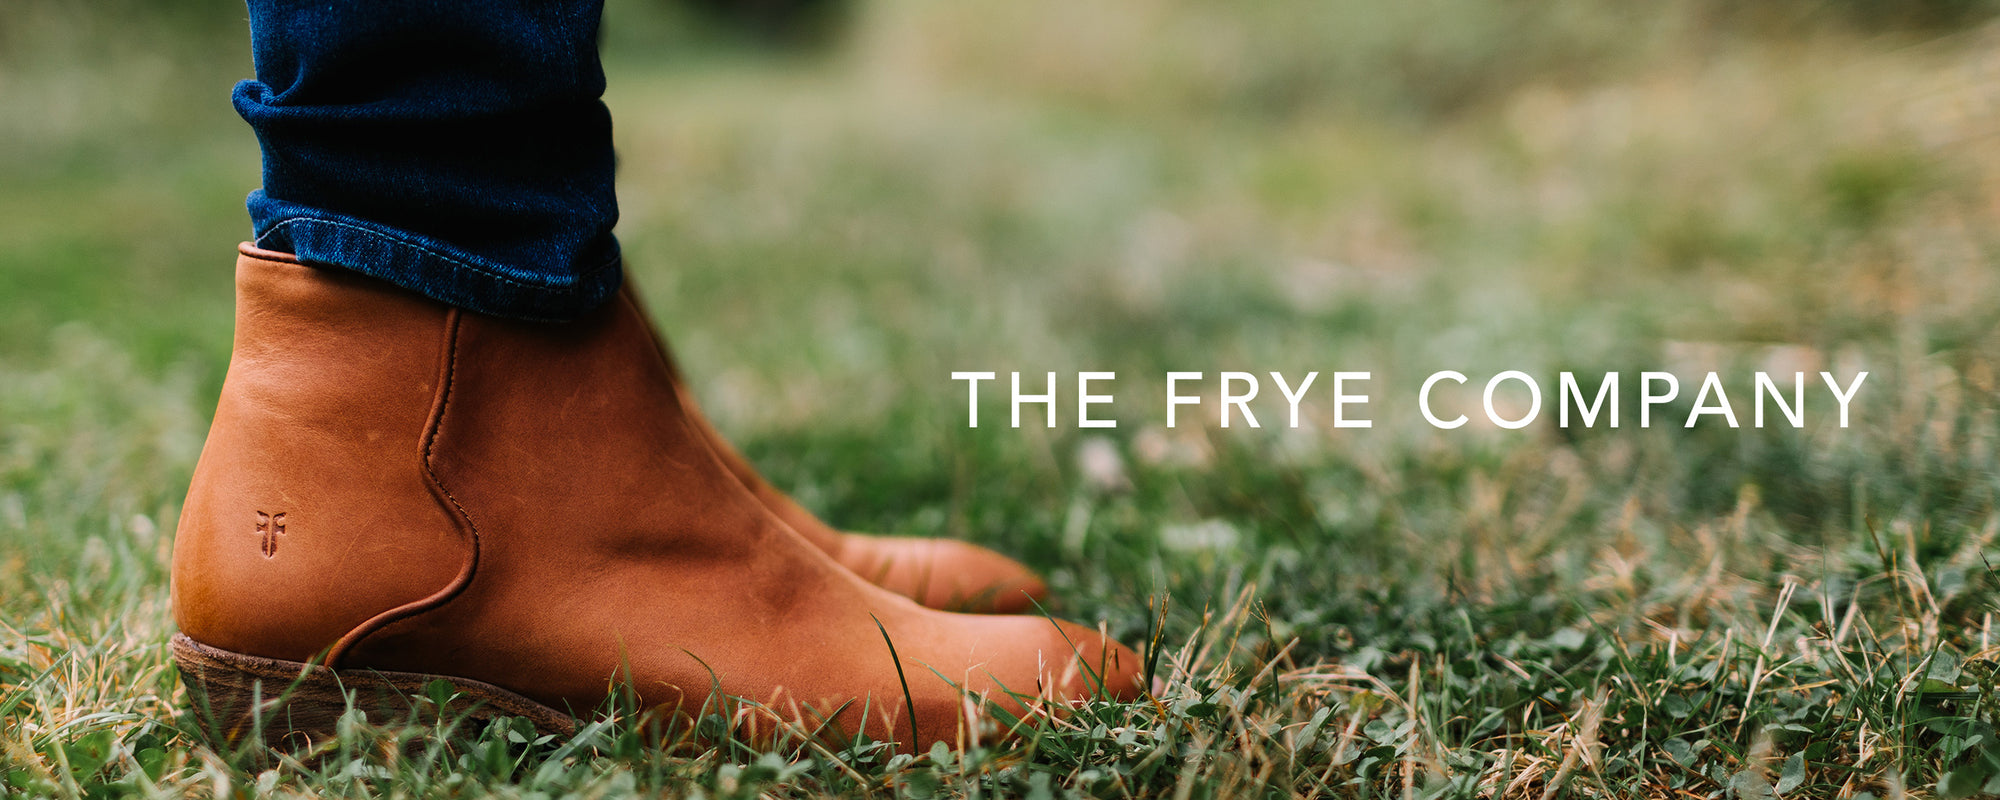 The Frye Company Accessories